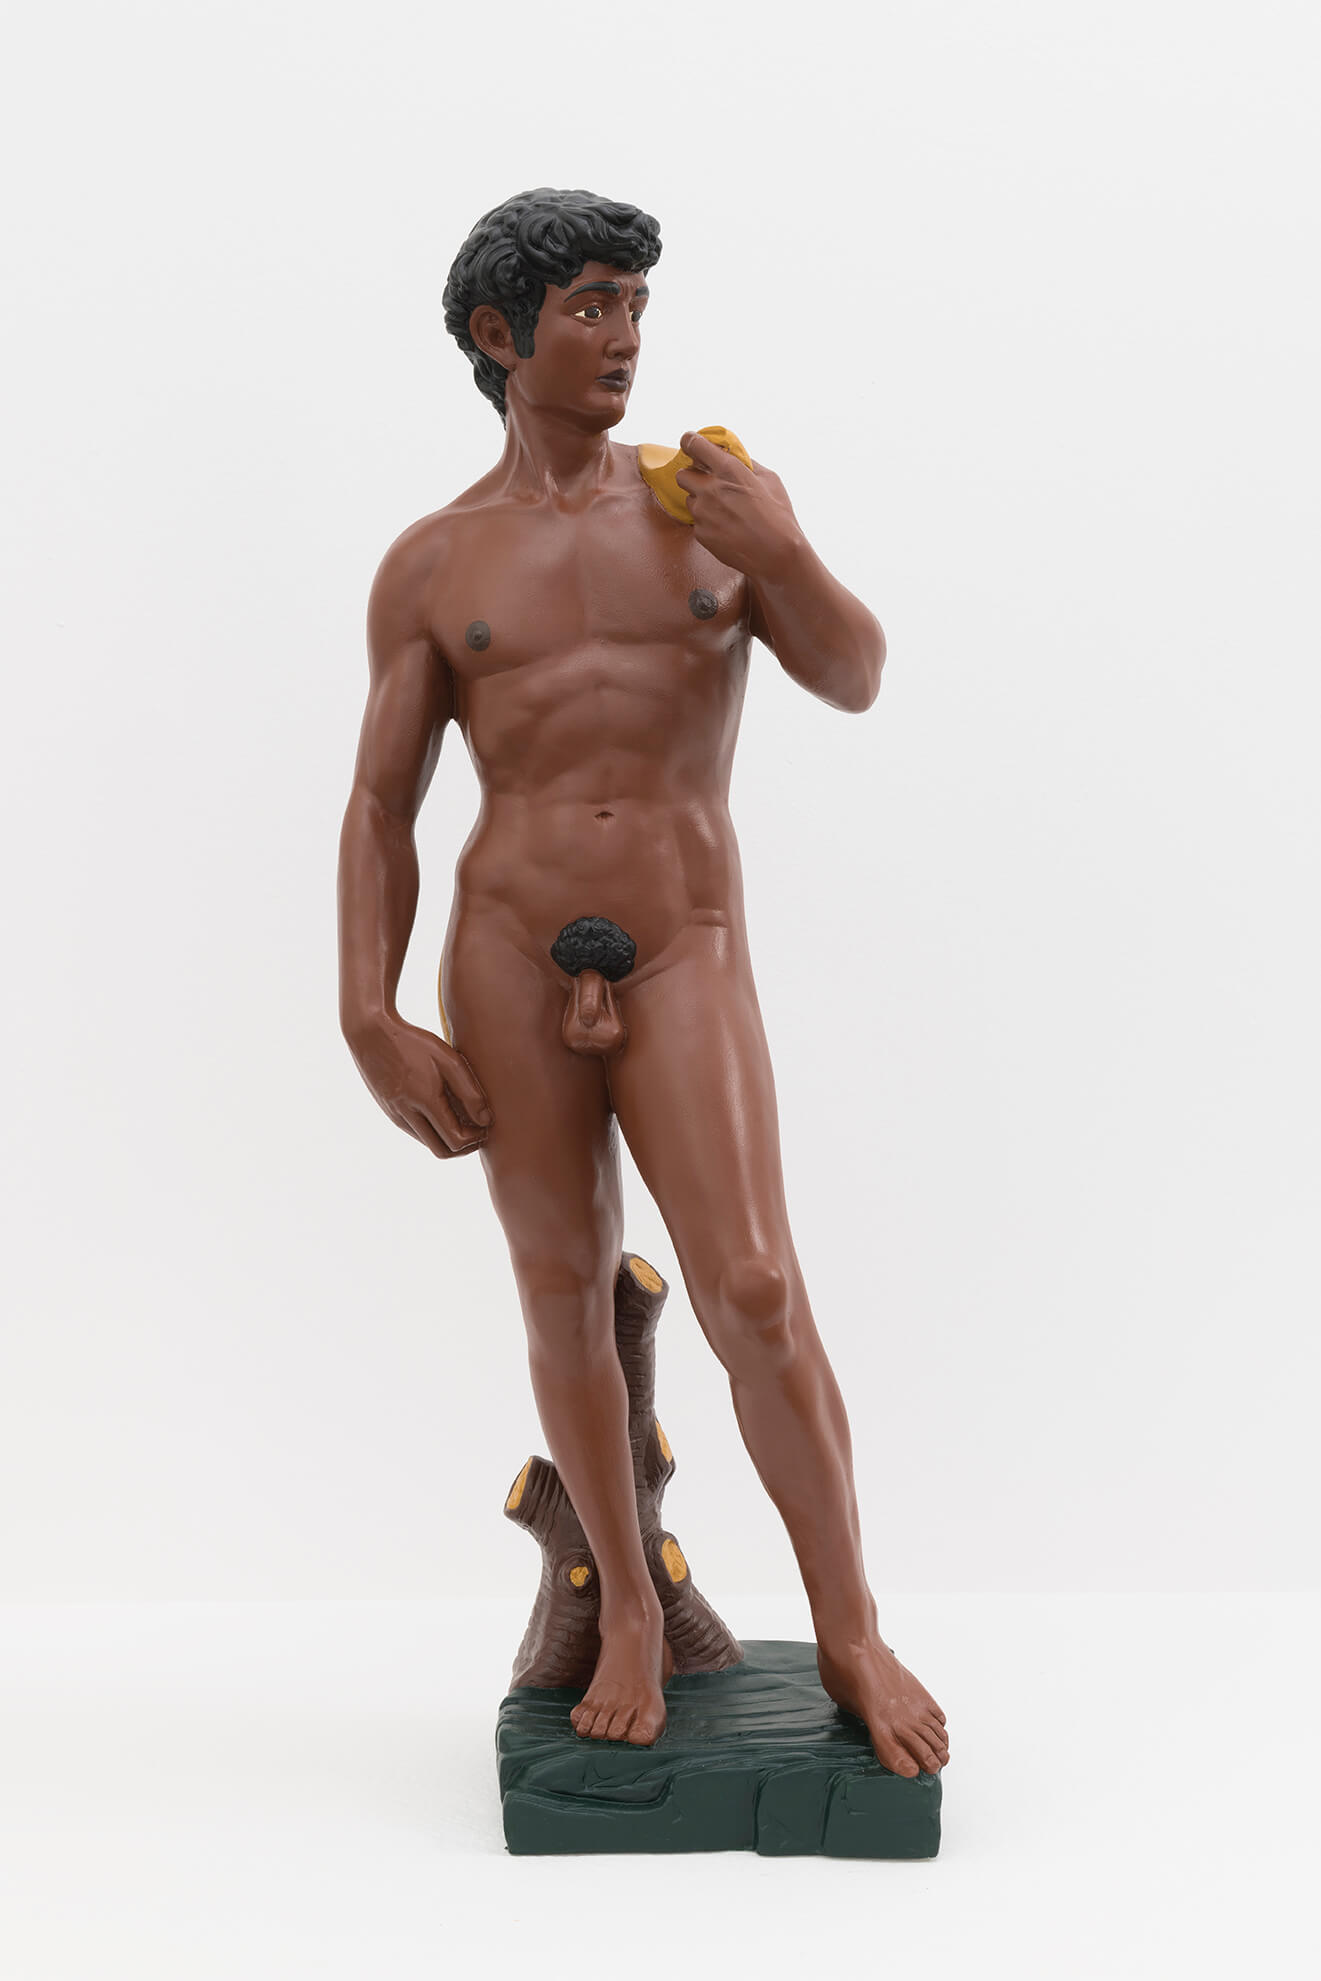 HANS-PETER FELDMANN. David (black), 2008 | El Museu Imaginari / El Museo Imaginario / The Imaginary Museum | ProjecteSD